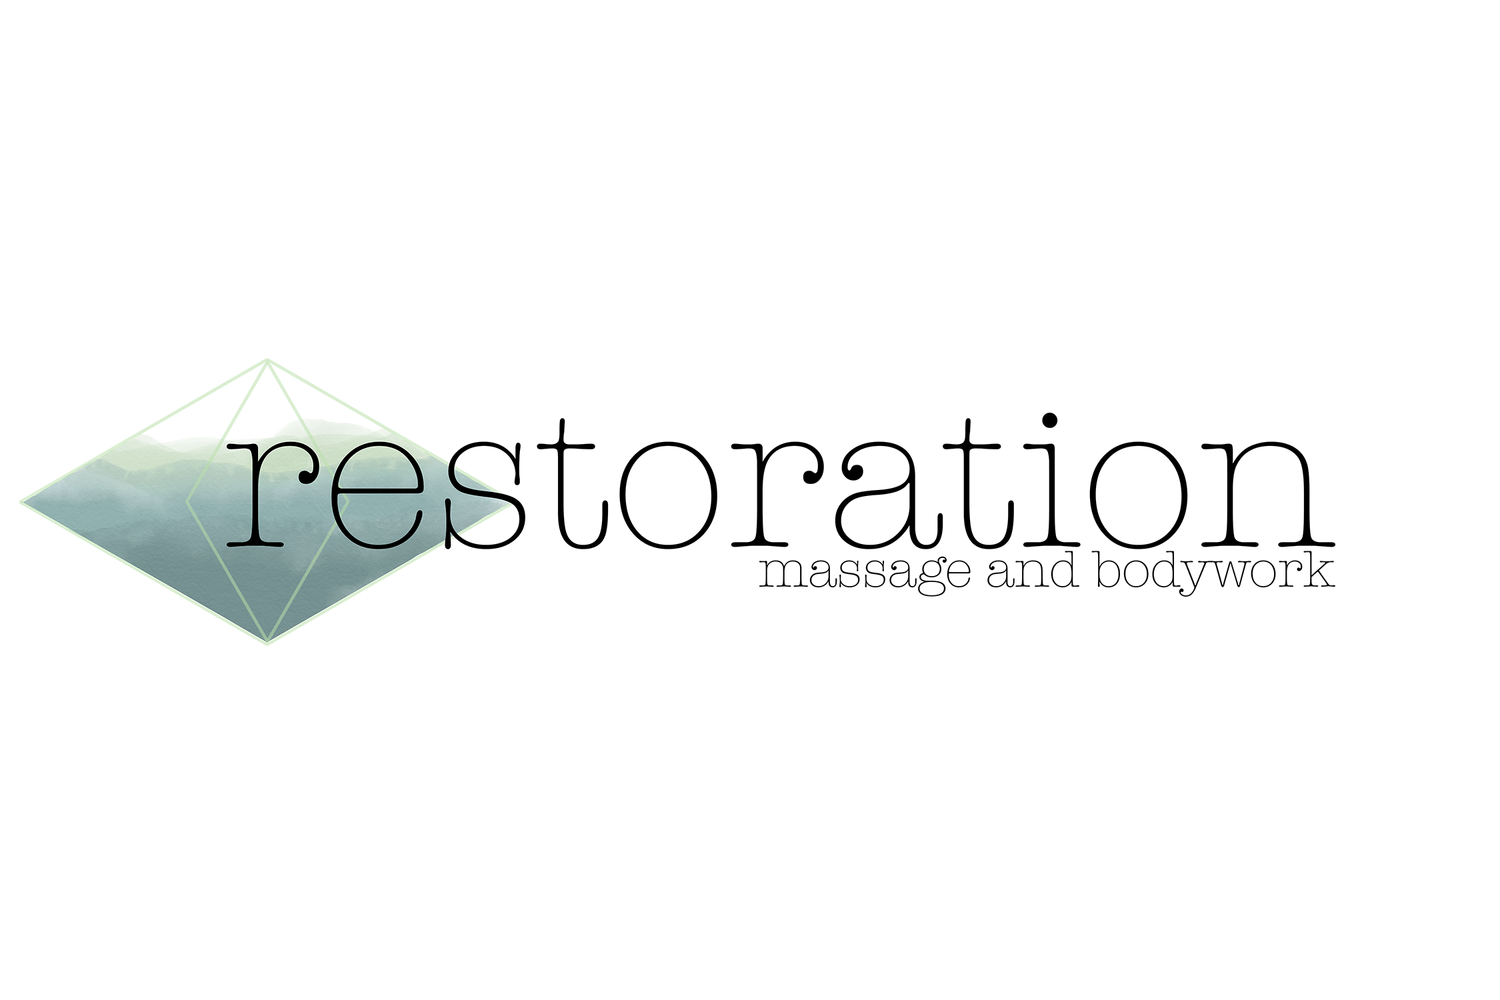 restoration: massage and bodywork.